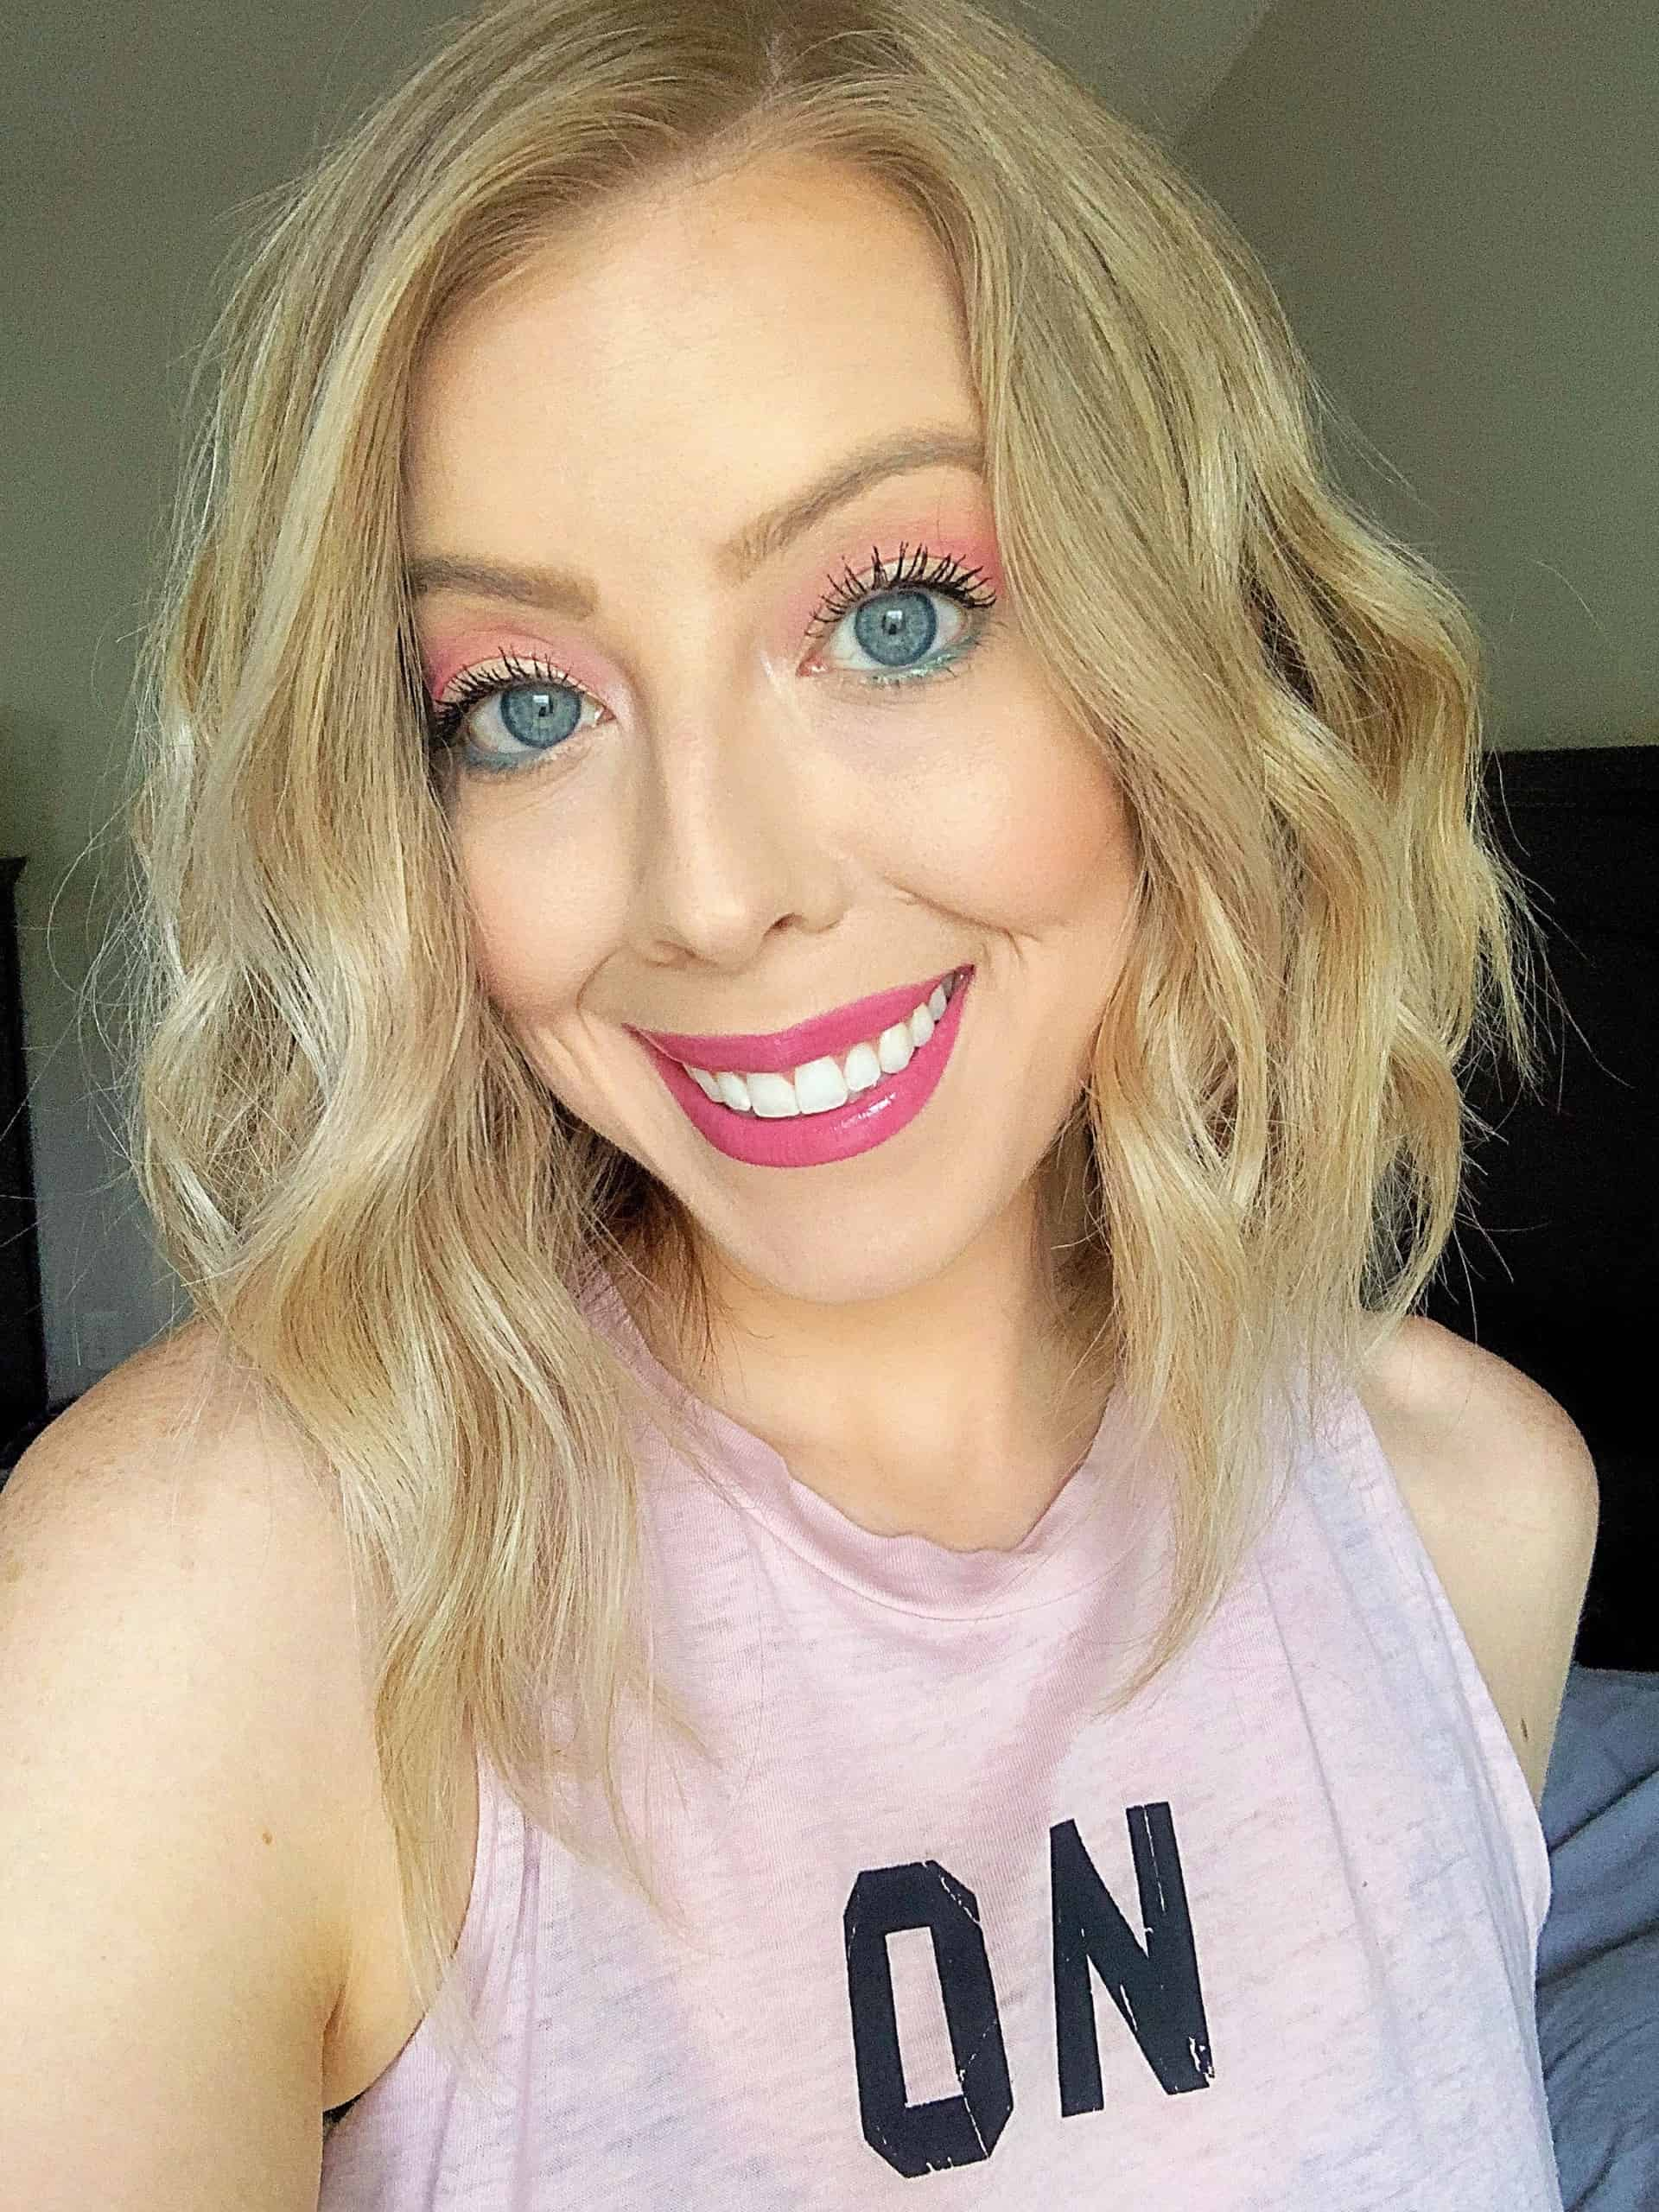 Check out my roundup of the best spring makeup trends and makeup products to try this year! I'm sharing pretty spring makeup looks to re-create and my favorite, new drugstore makeup products and affordable makeup recommendations. #springmakeup #makeuplook #drugstoremakeup #makeuptrends